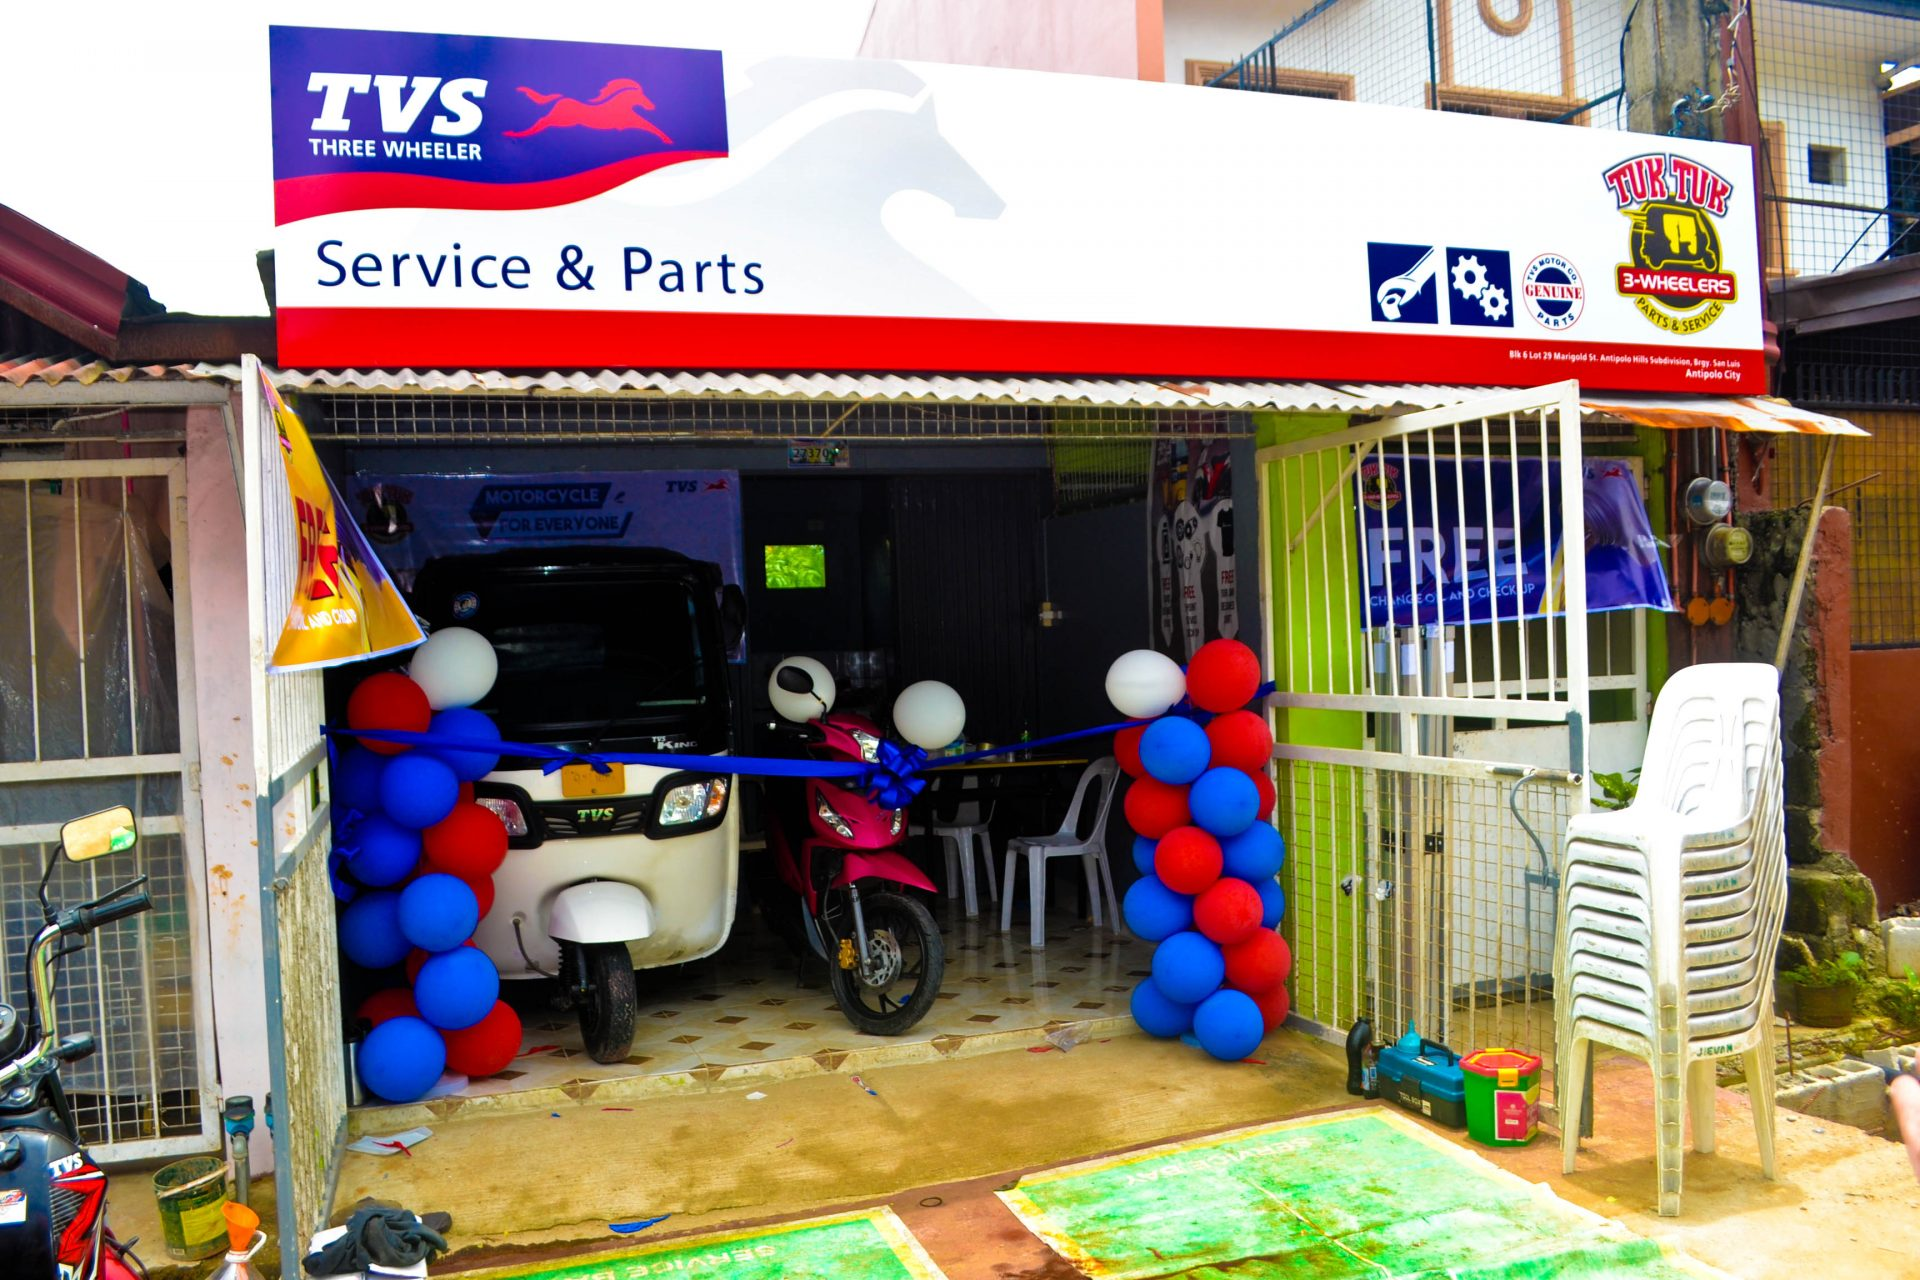 Tuk Tuk 3-Wheelers Antipolo Opening Day Photo Gallery TVS King Number One for Perfomance